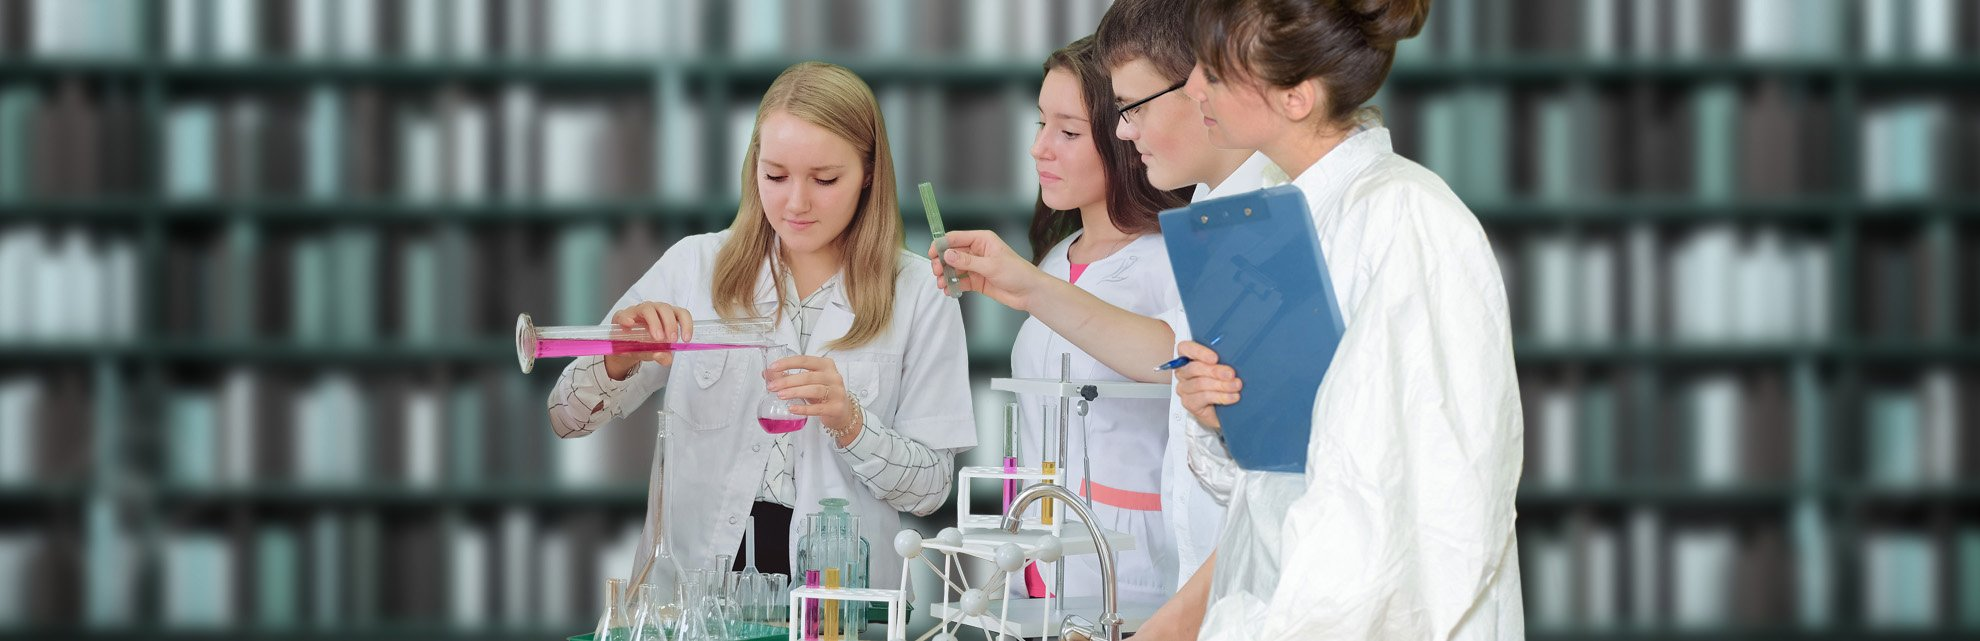 STEM Education Resource - Top Banner: Science